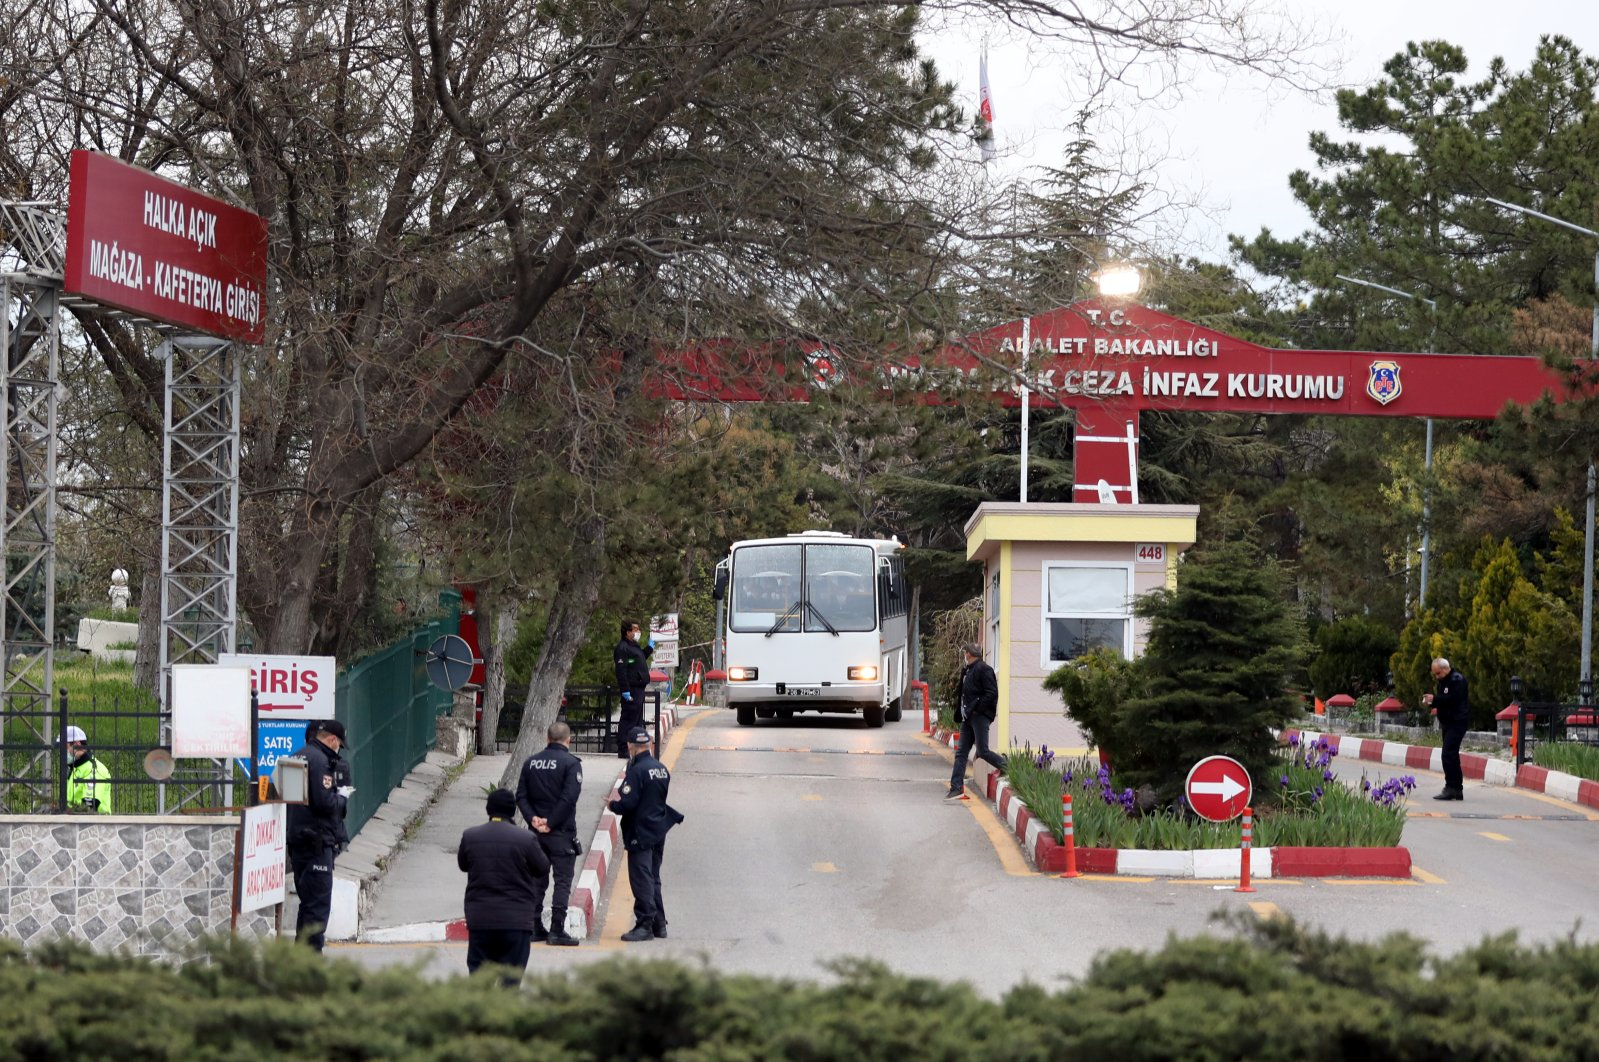 Bus carrying inmates leaves Ankara Penitentiary in the capital Ankara on Wednesday, April 15, 2020. (AA Photo)